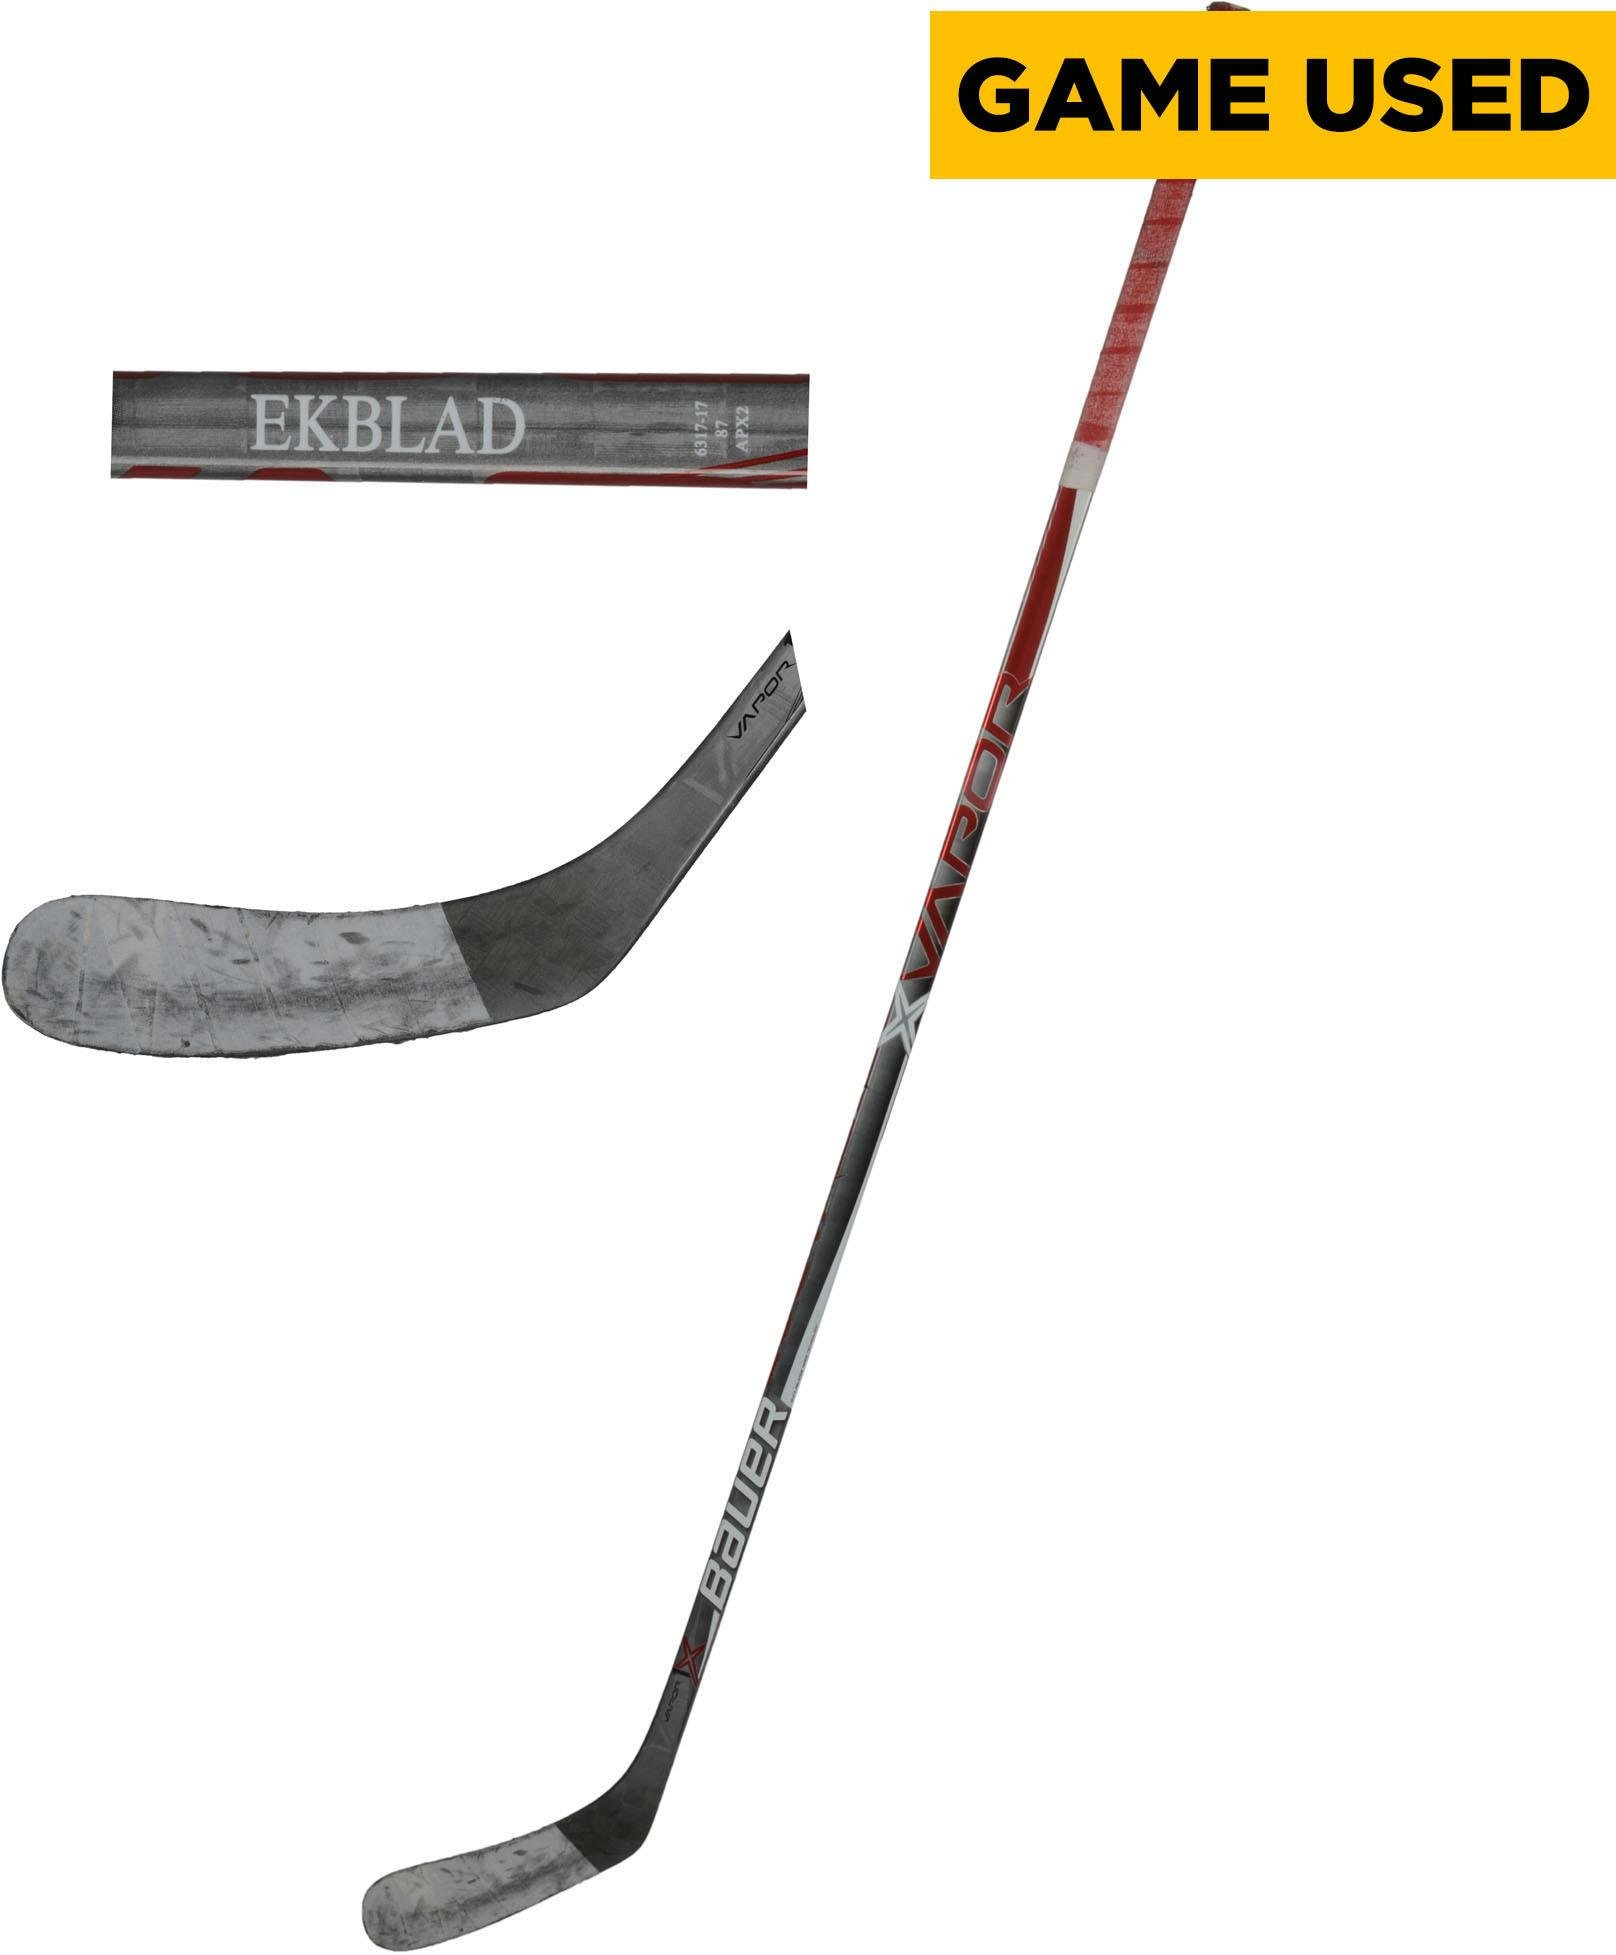 Aaron Ekblad Florida Panthers Game Used Gray Bauer Vapor 1X Hockey Stick from the 2016 17 NHL Season Fanatics Authentic Certified